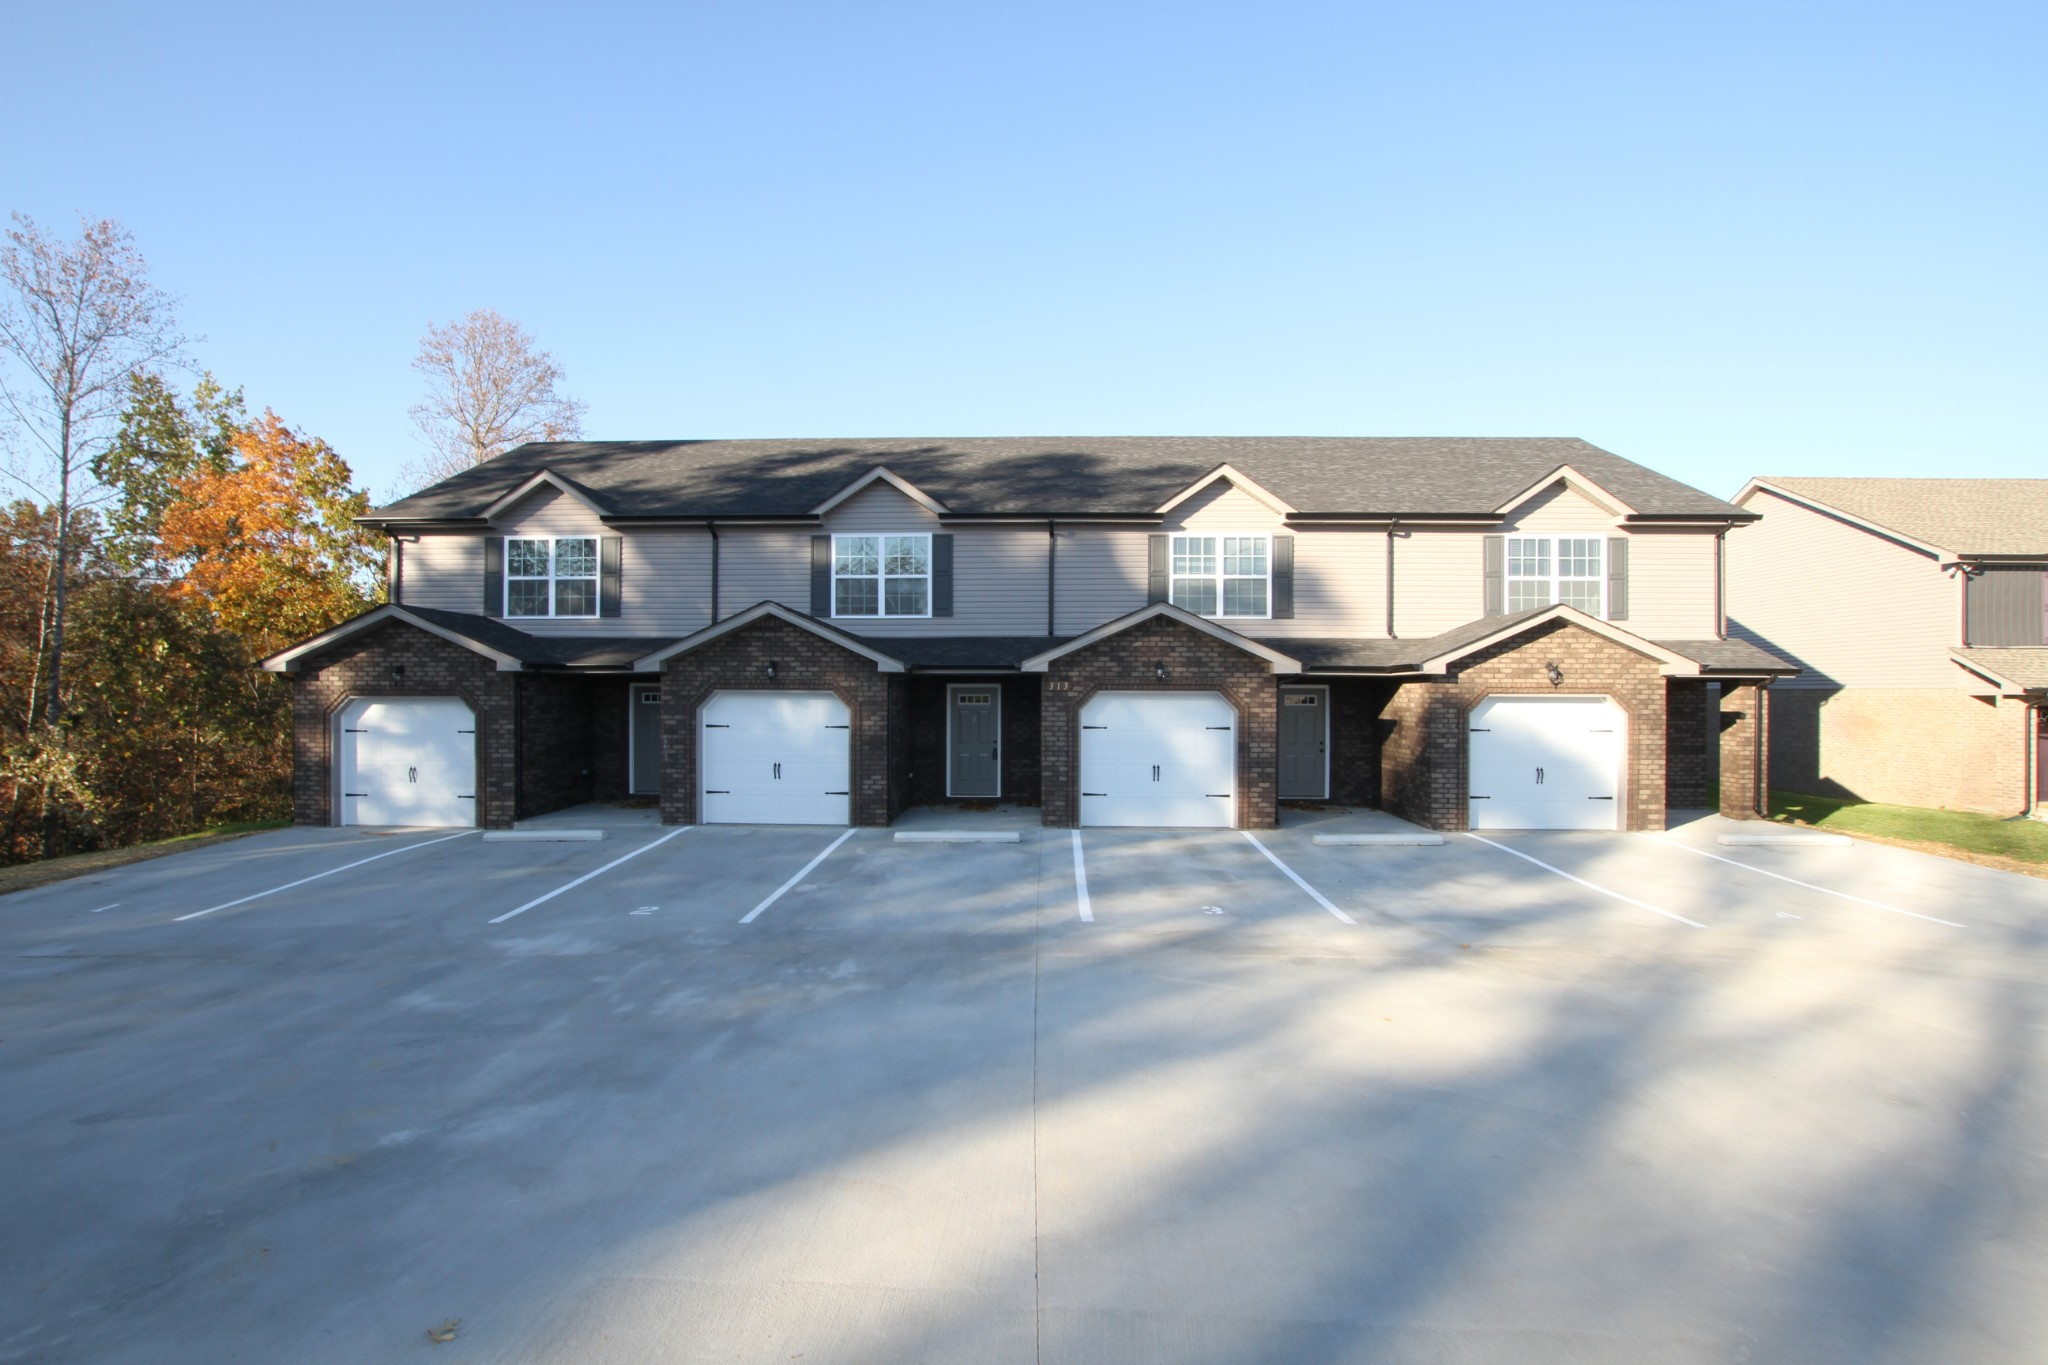 313 Rowand Ct Property Photo - Clarksville, TN real estate listing